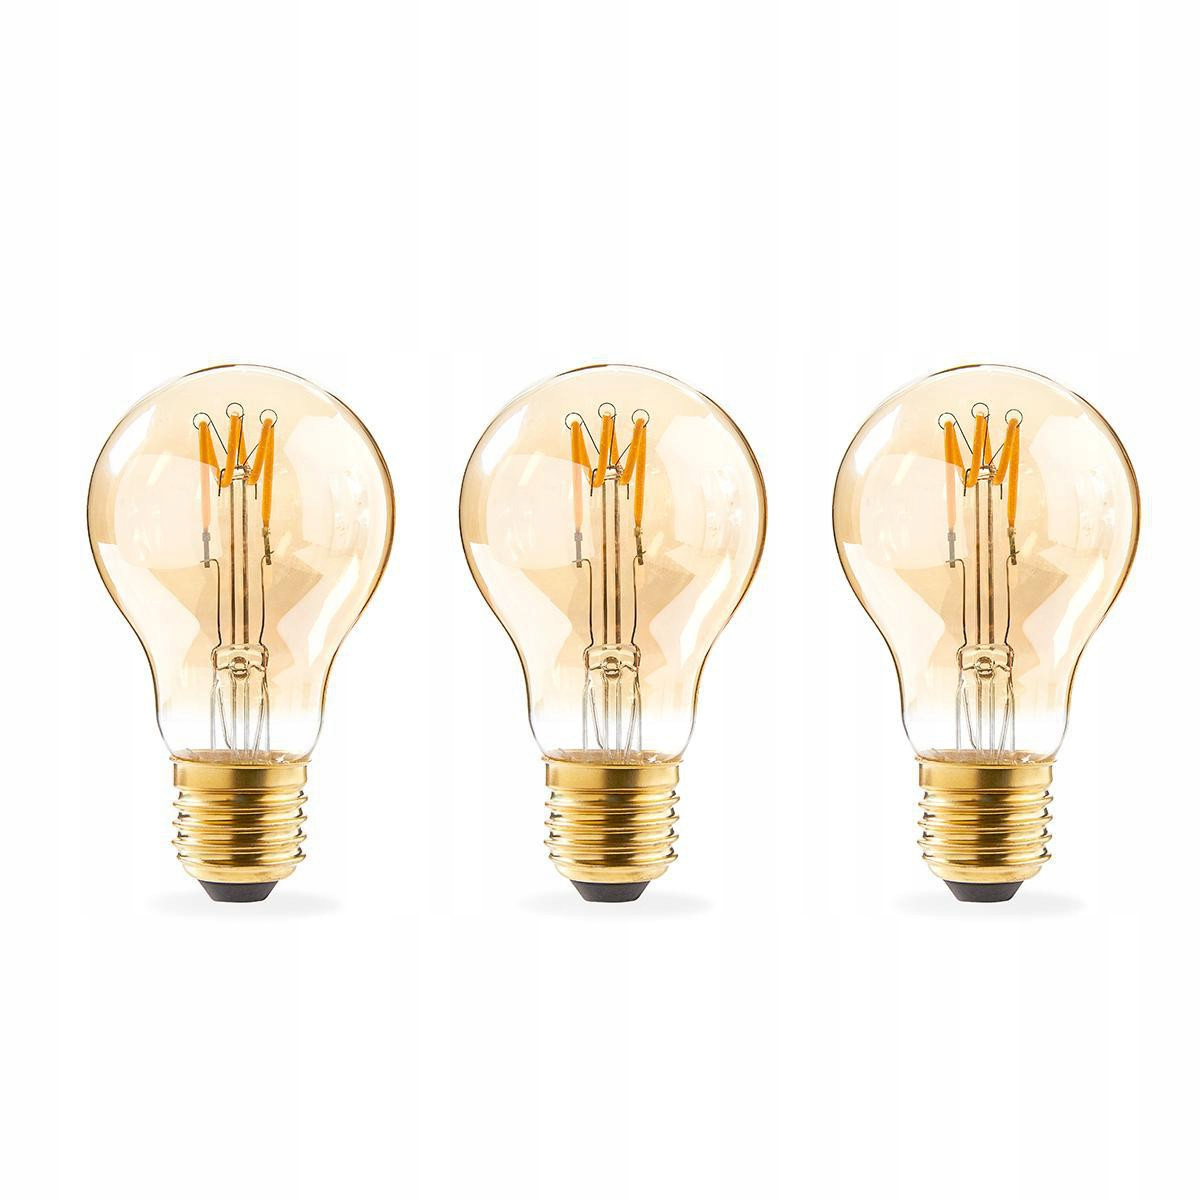 LED žiarovka Retro Filament E27 A60 3W 3bal